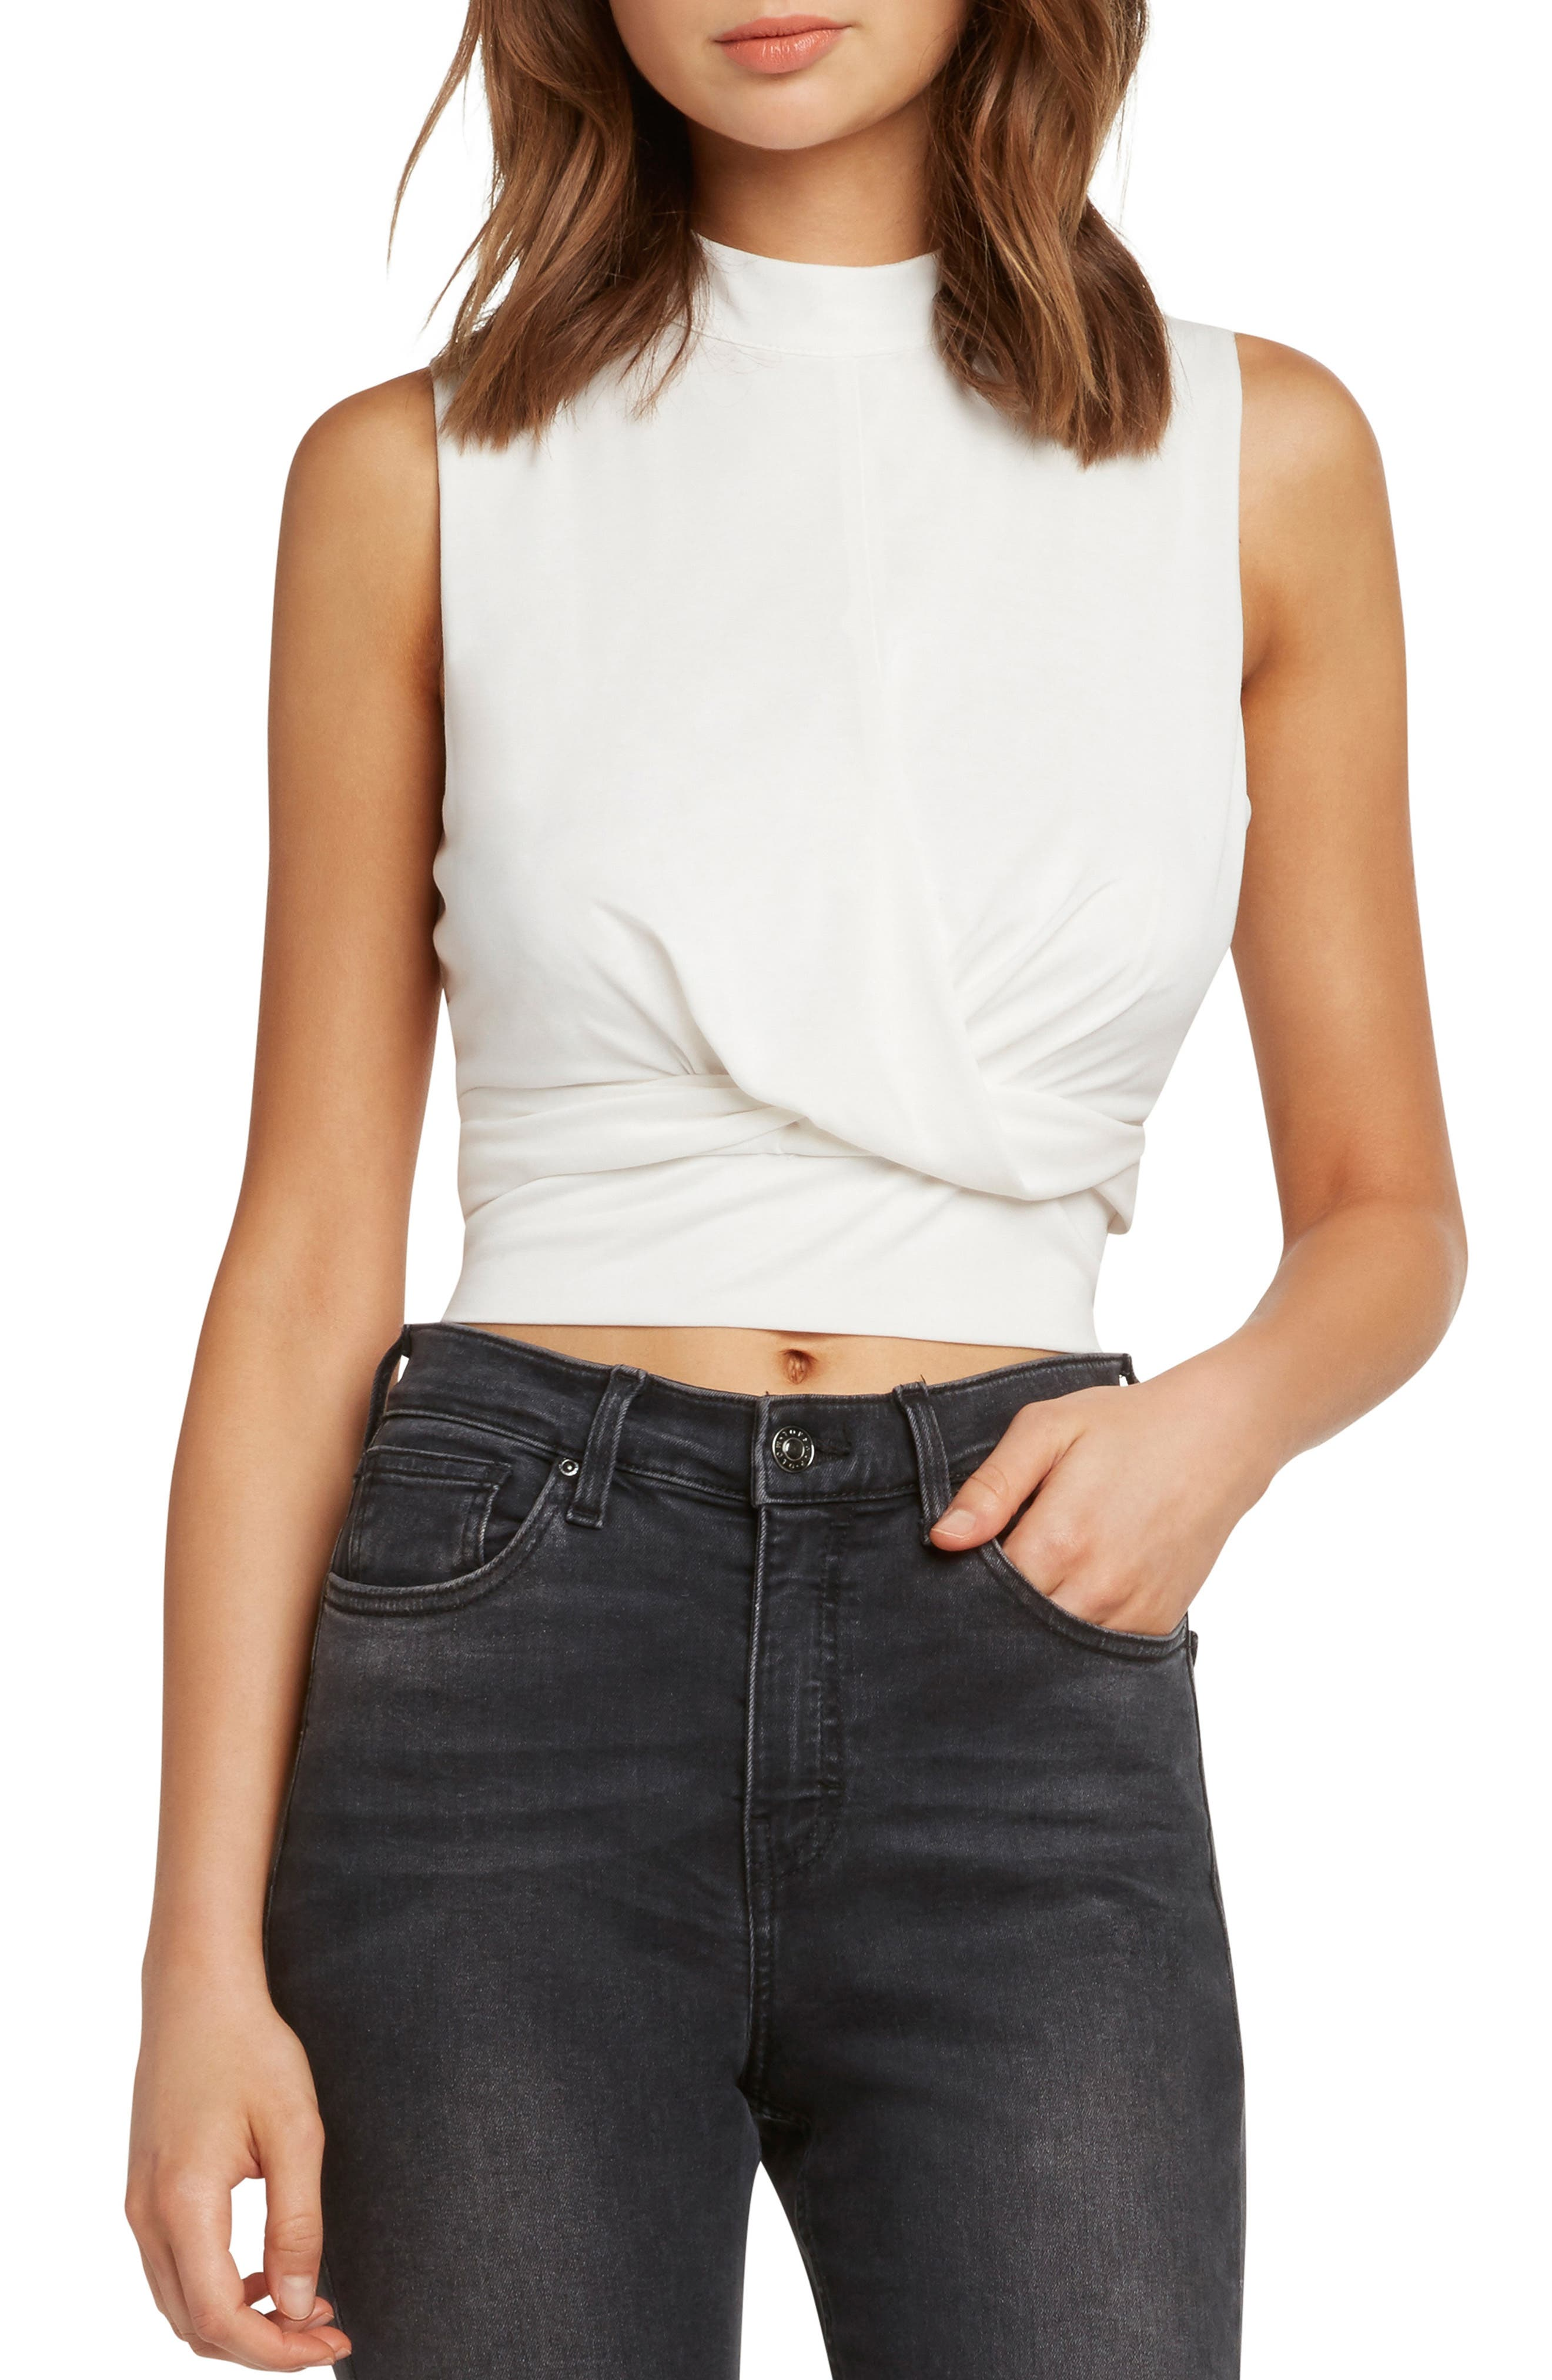 WILLOW & CLAY TWIST FRONT SLEEVELESS CROP TOP